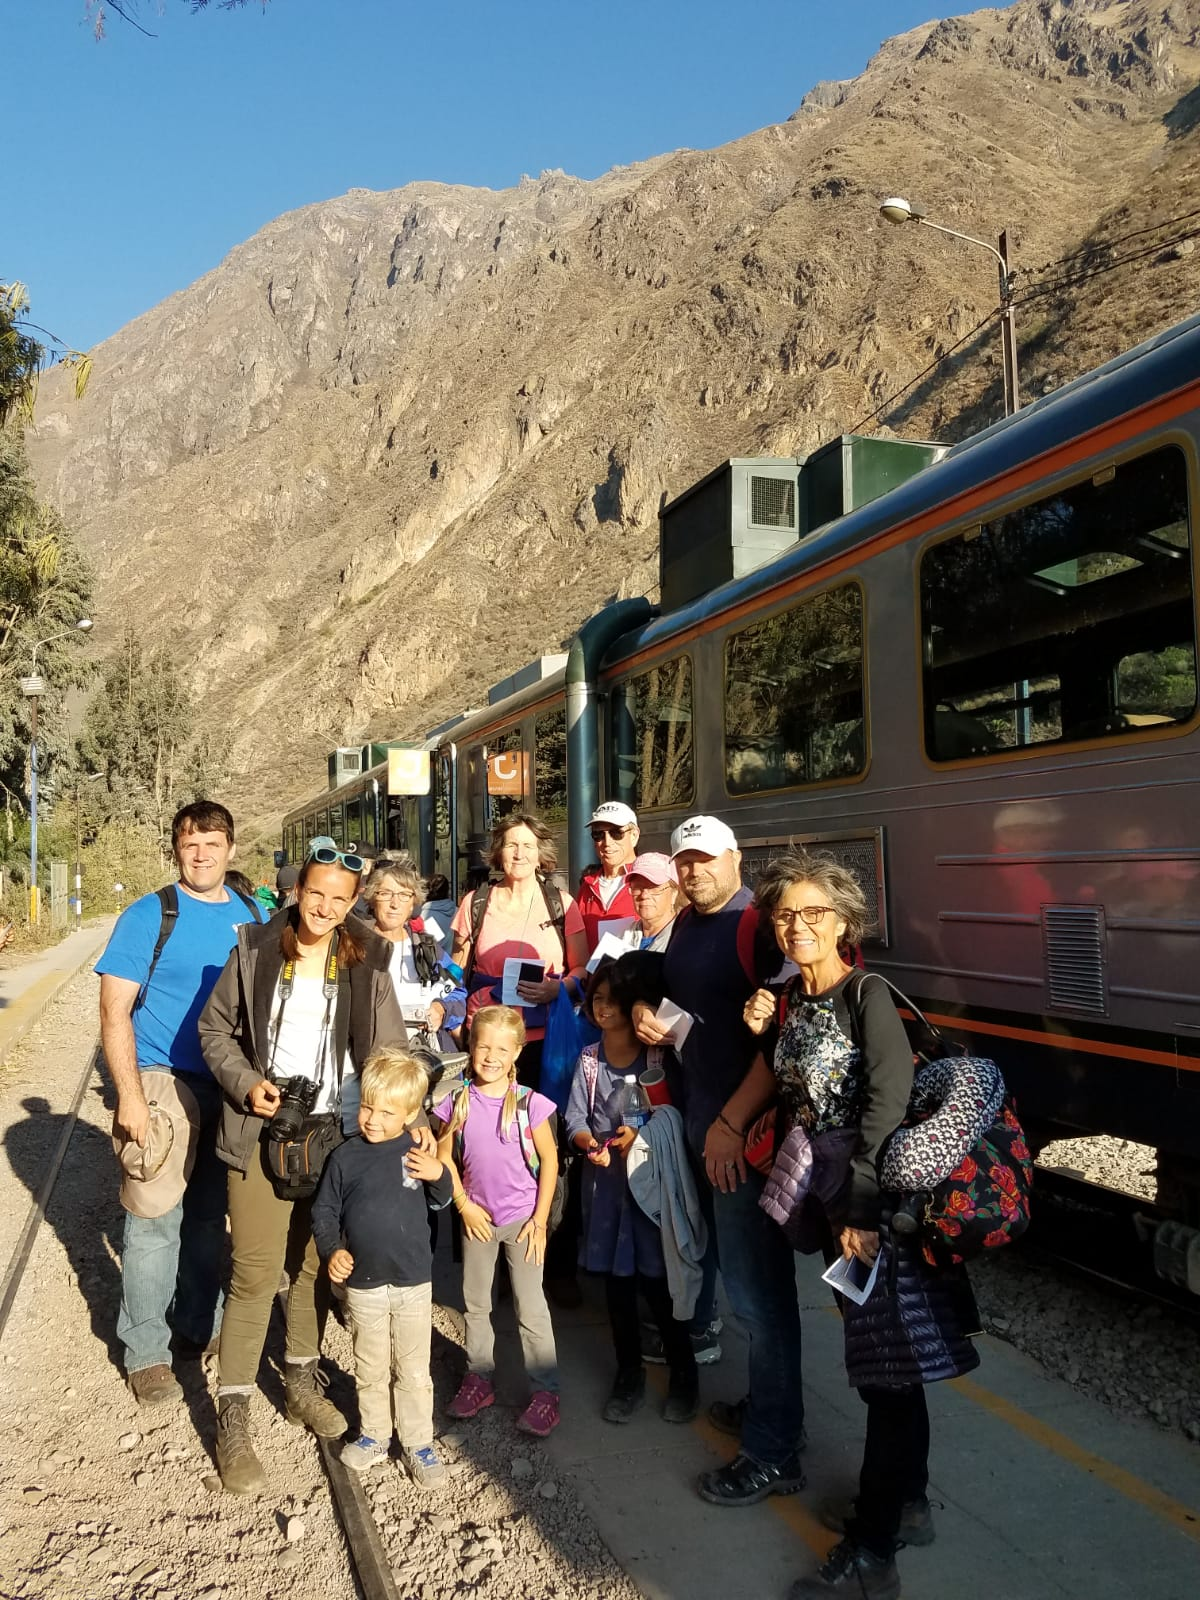 Leaving by train for Aguas Calientes